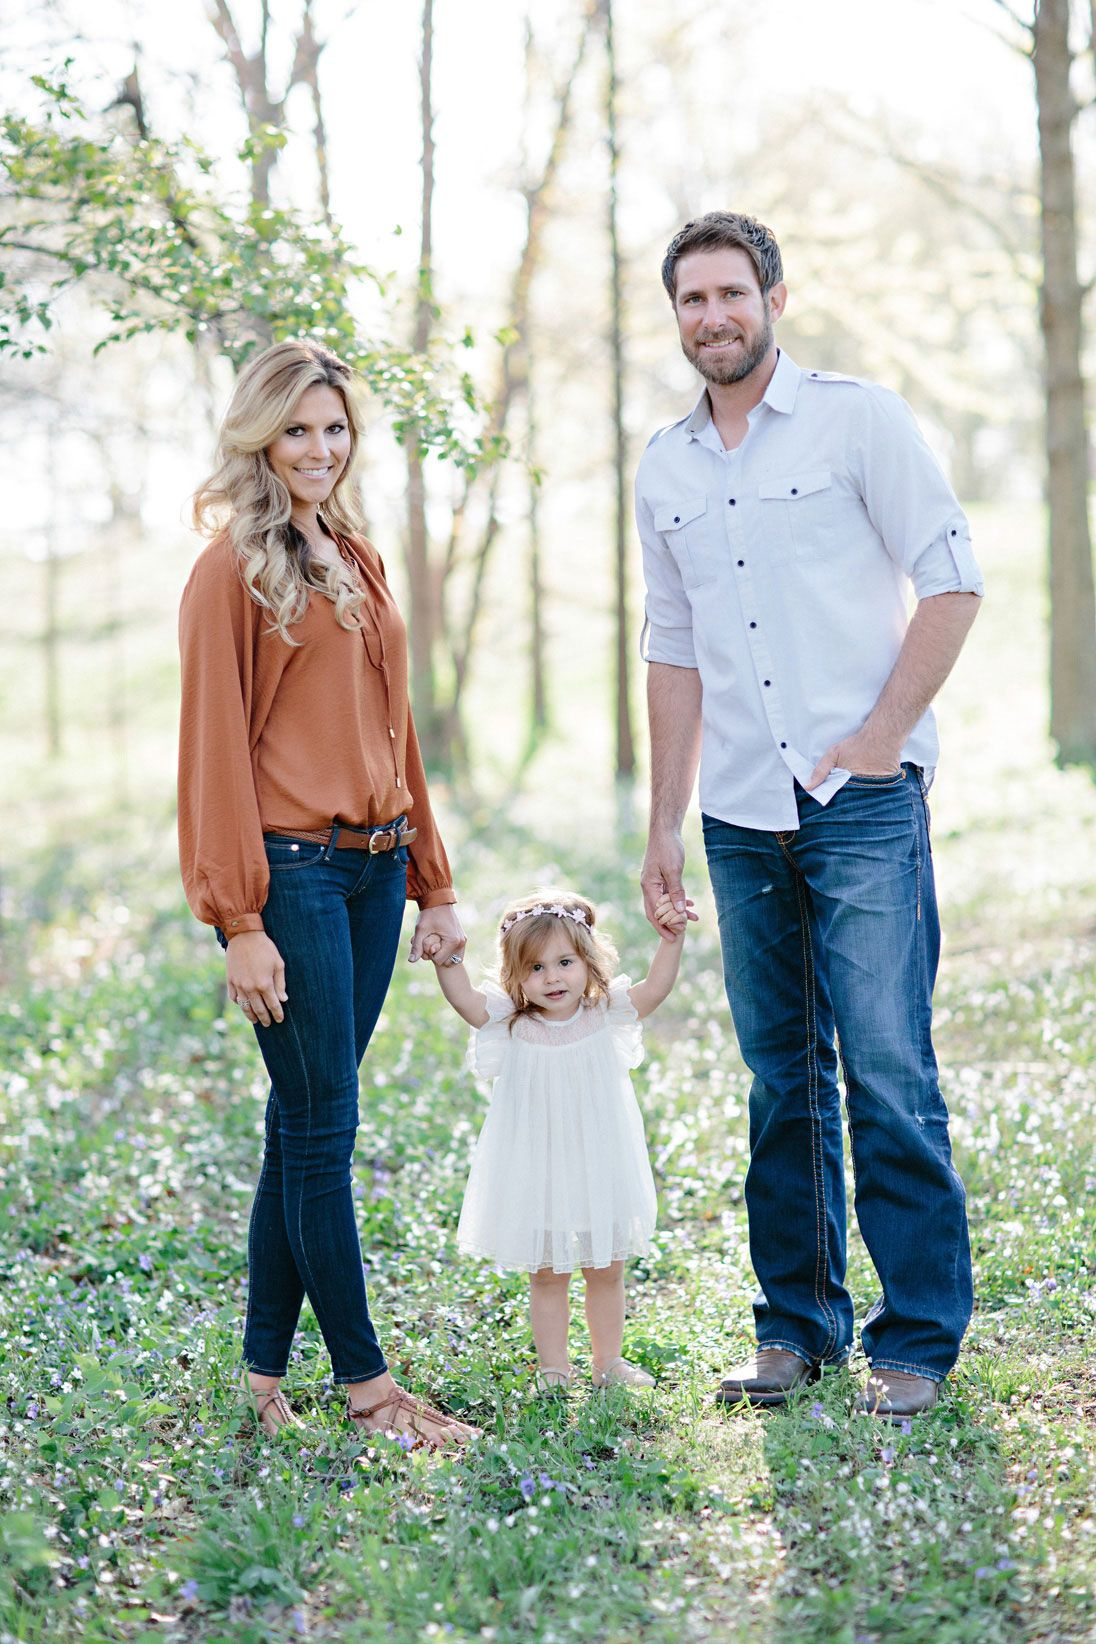 Fall Family Photo Ideas What To Wear Live the settin...